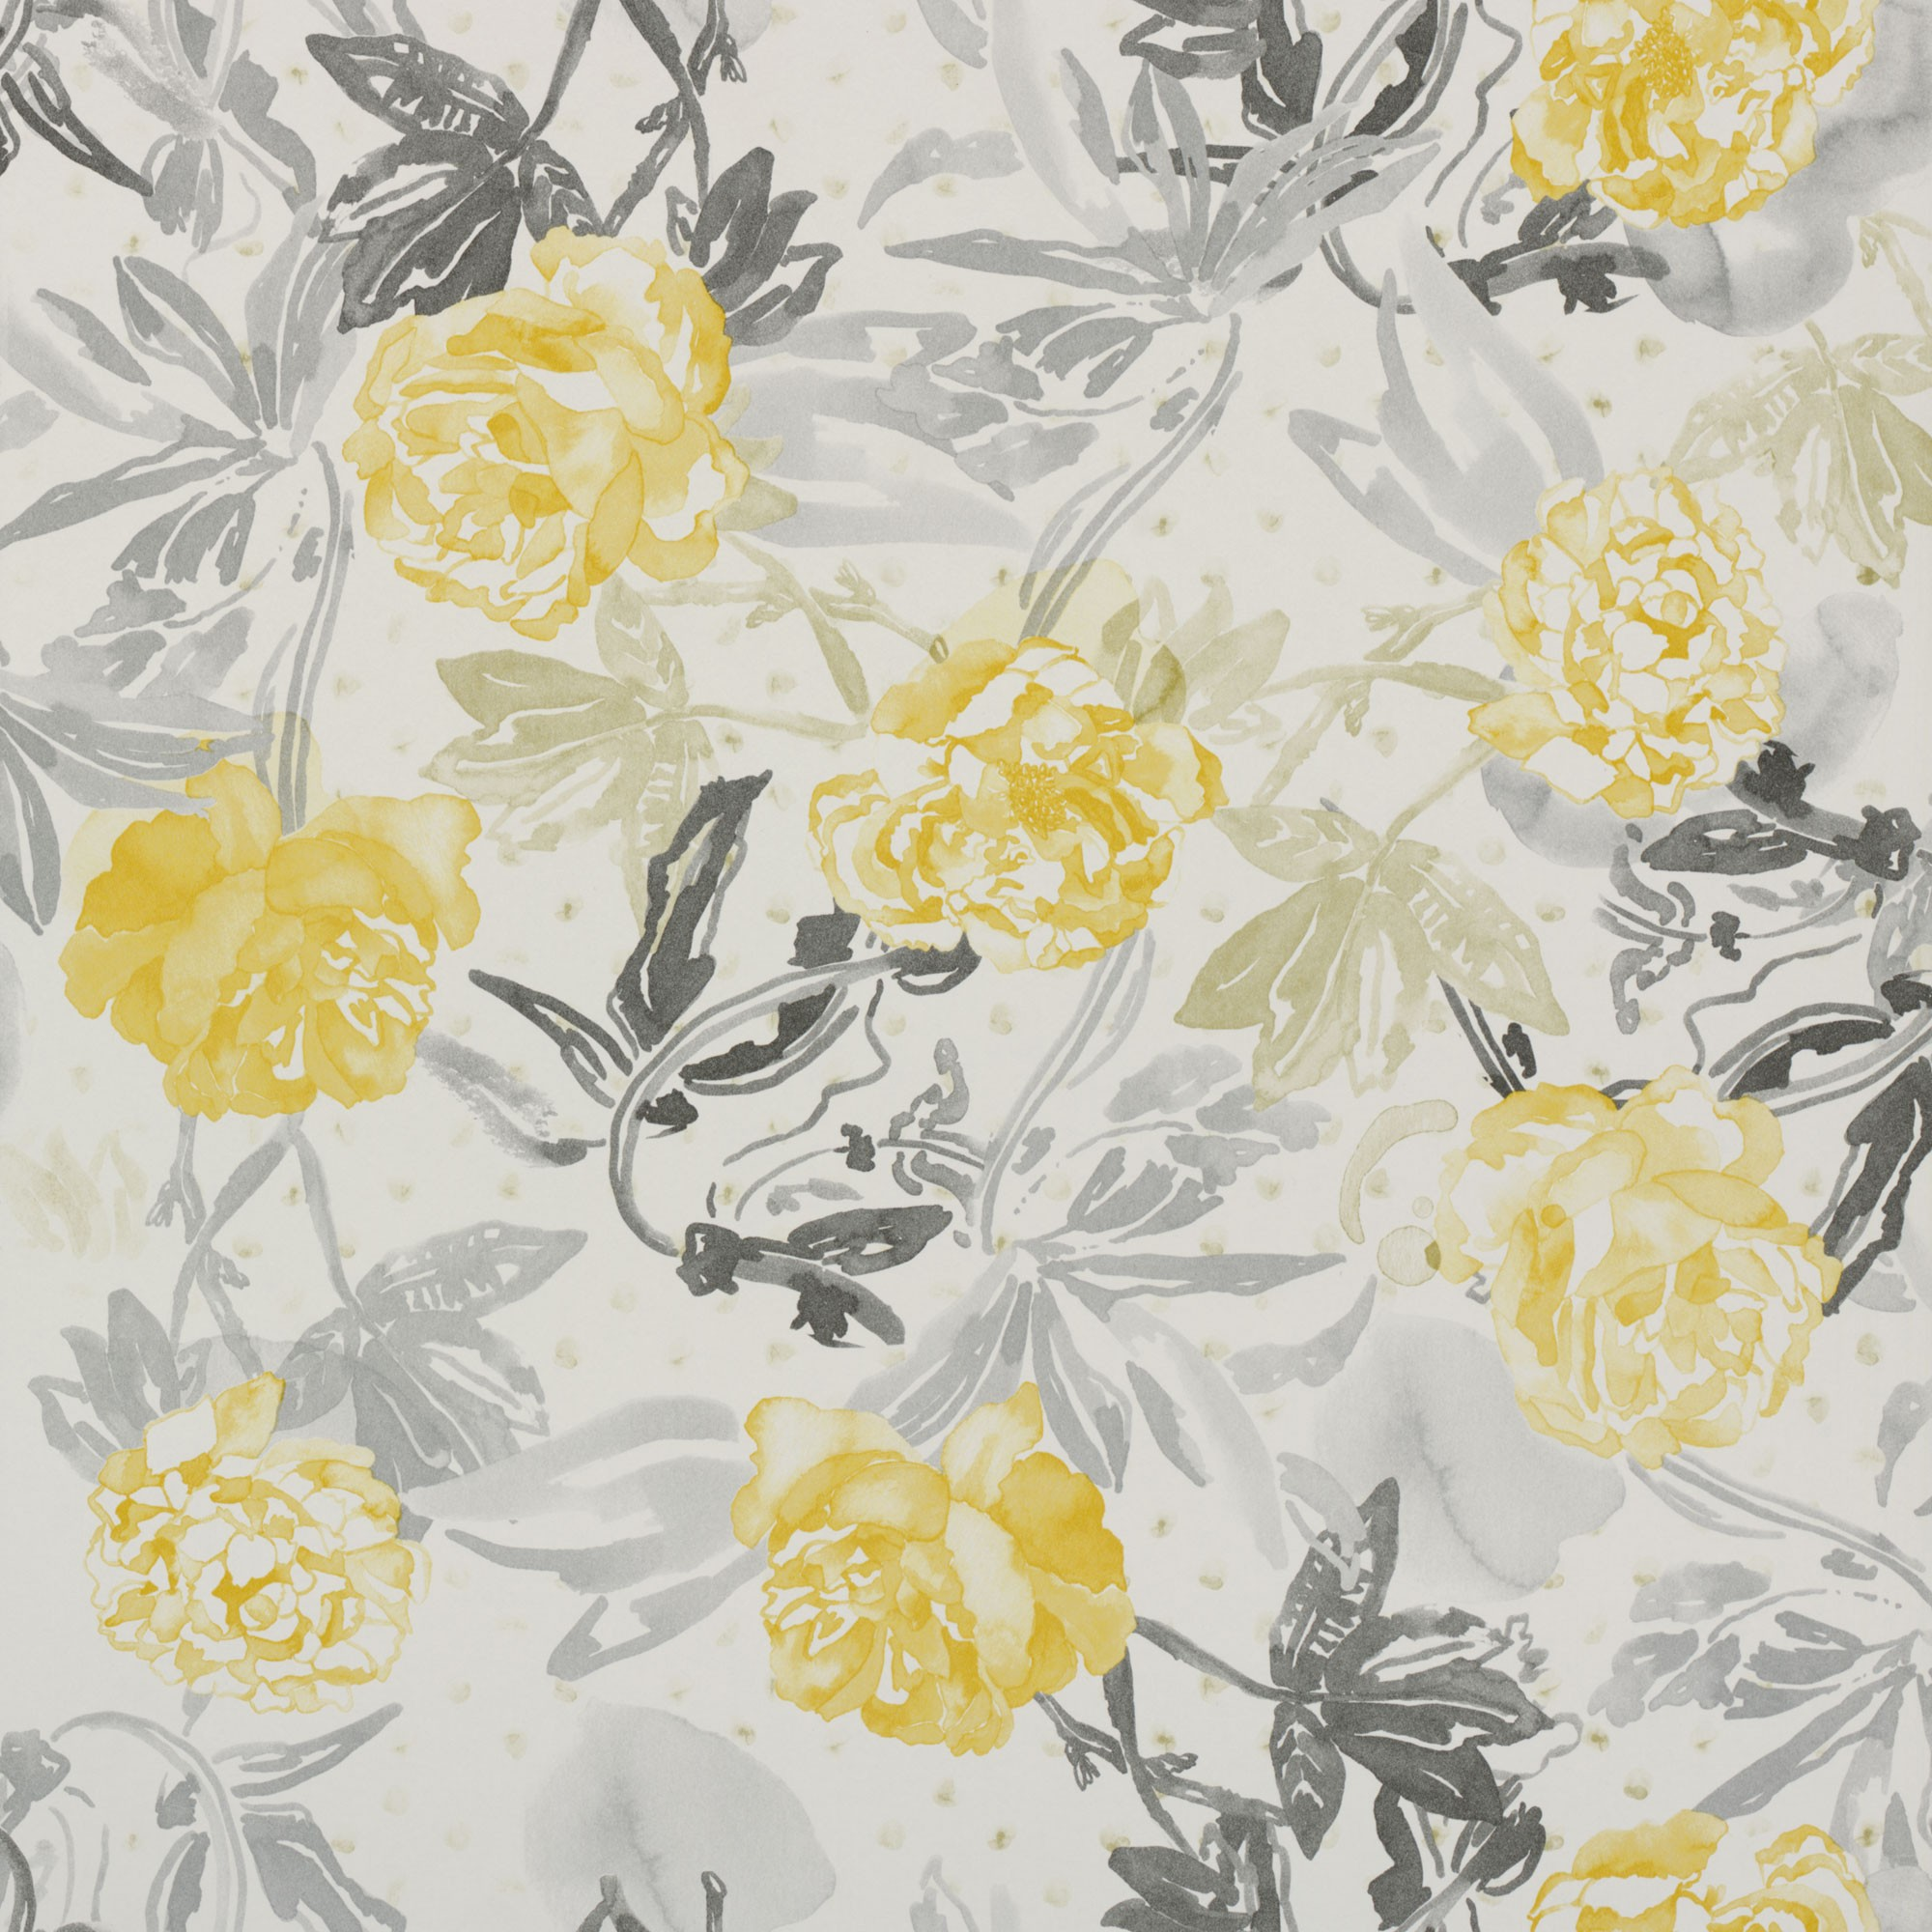 Roses watercolour golden yellow and grey 3900020 mightylinksfo